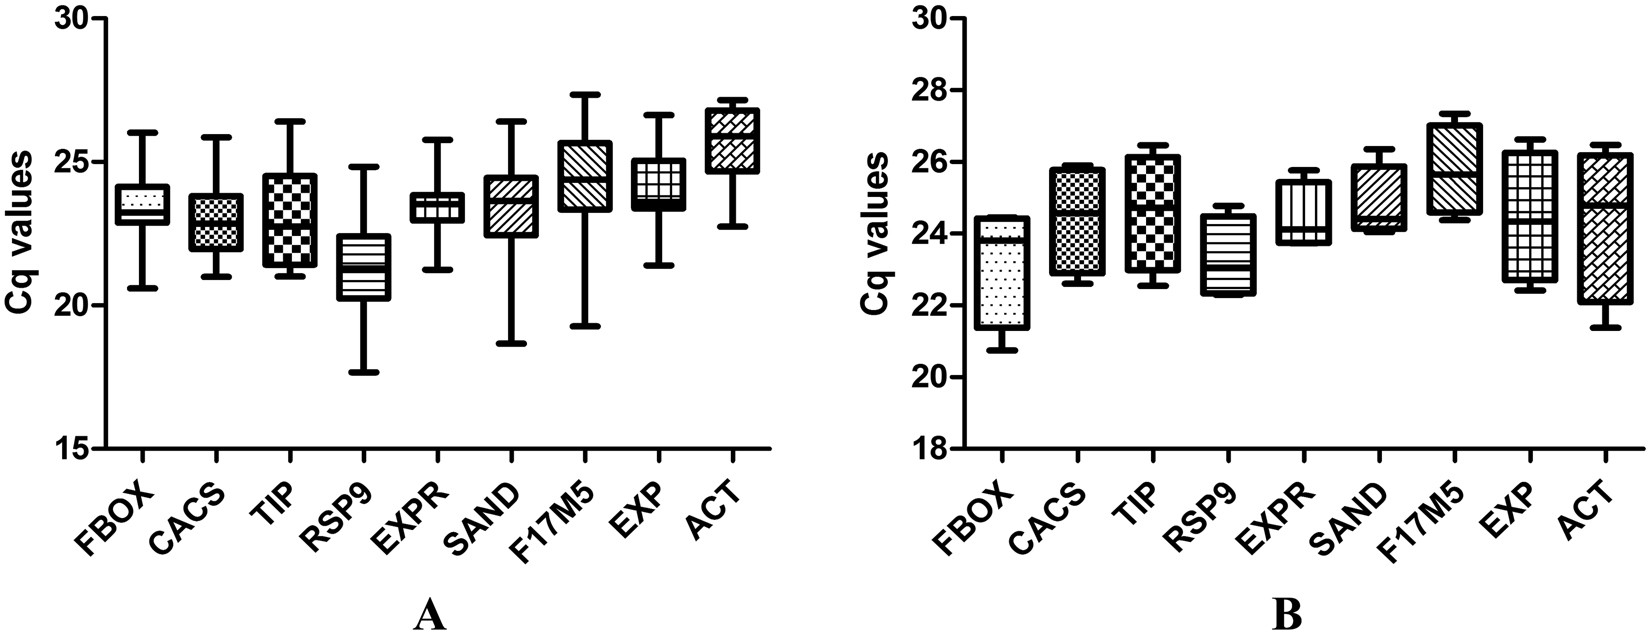 Effect of Melatonin on the stability and expression of